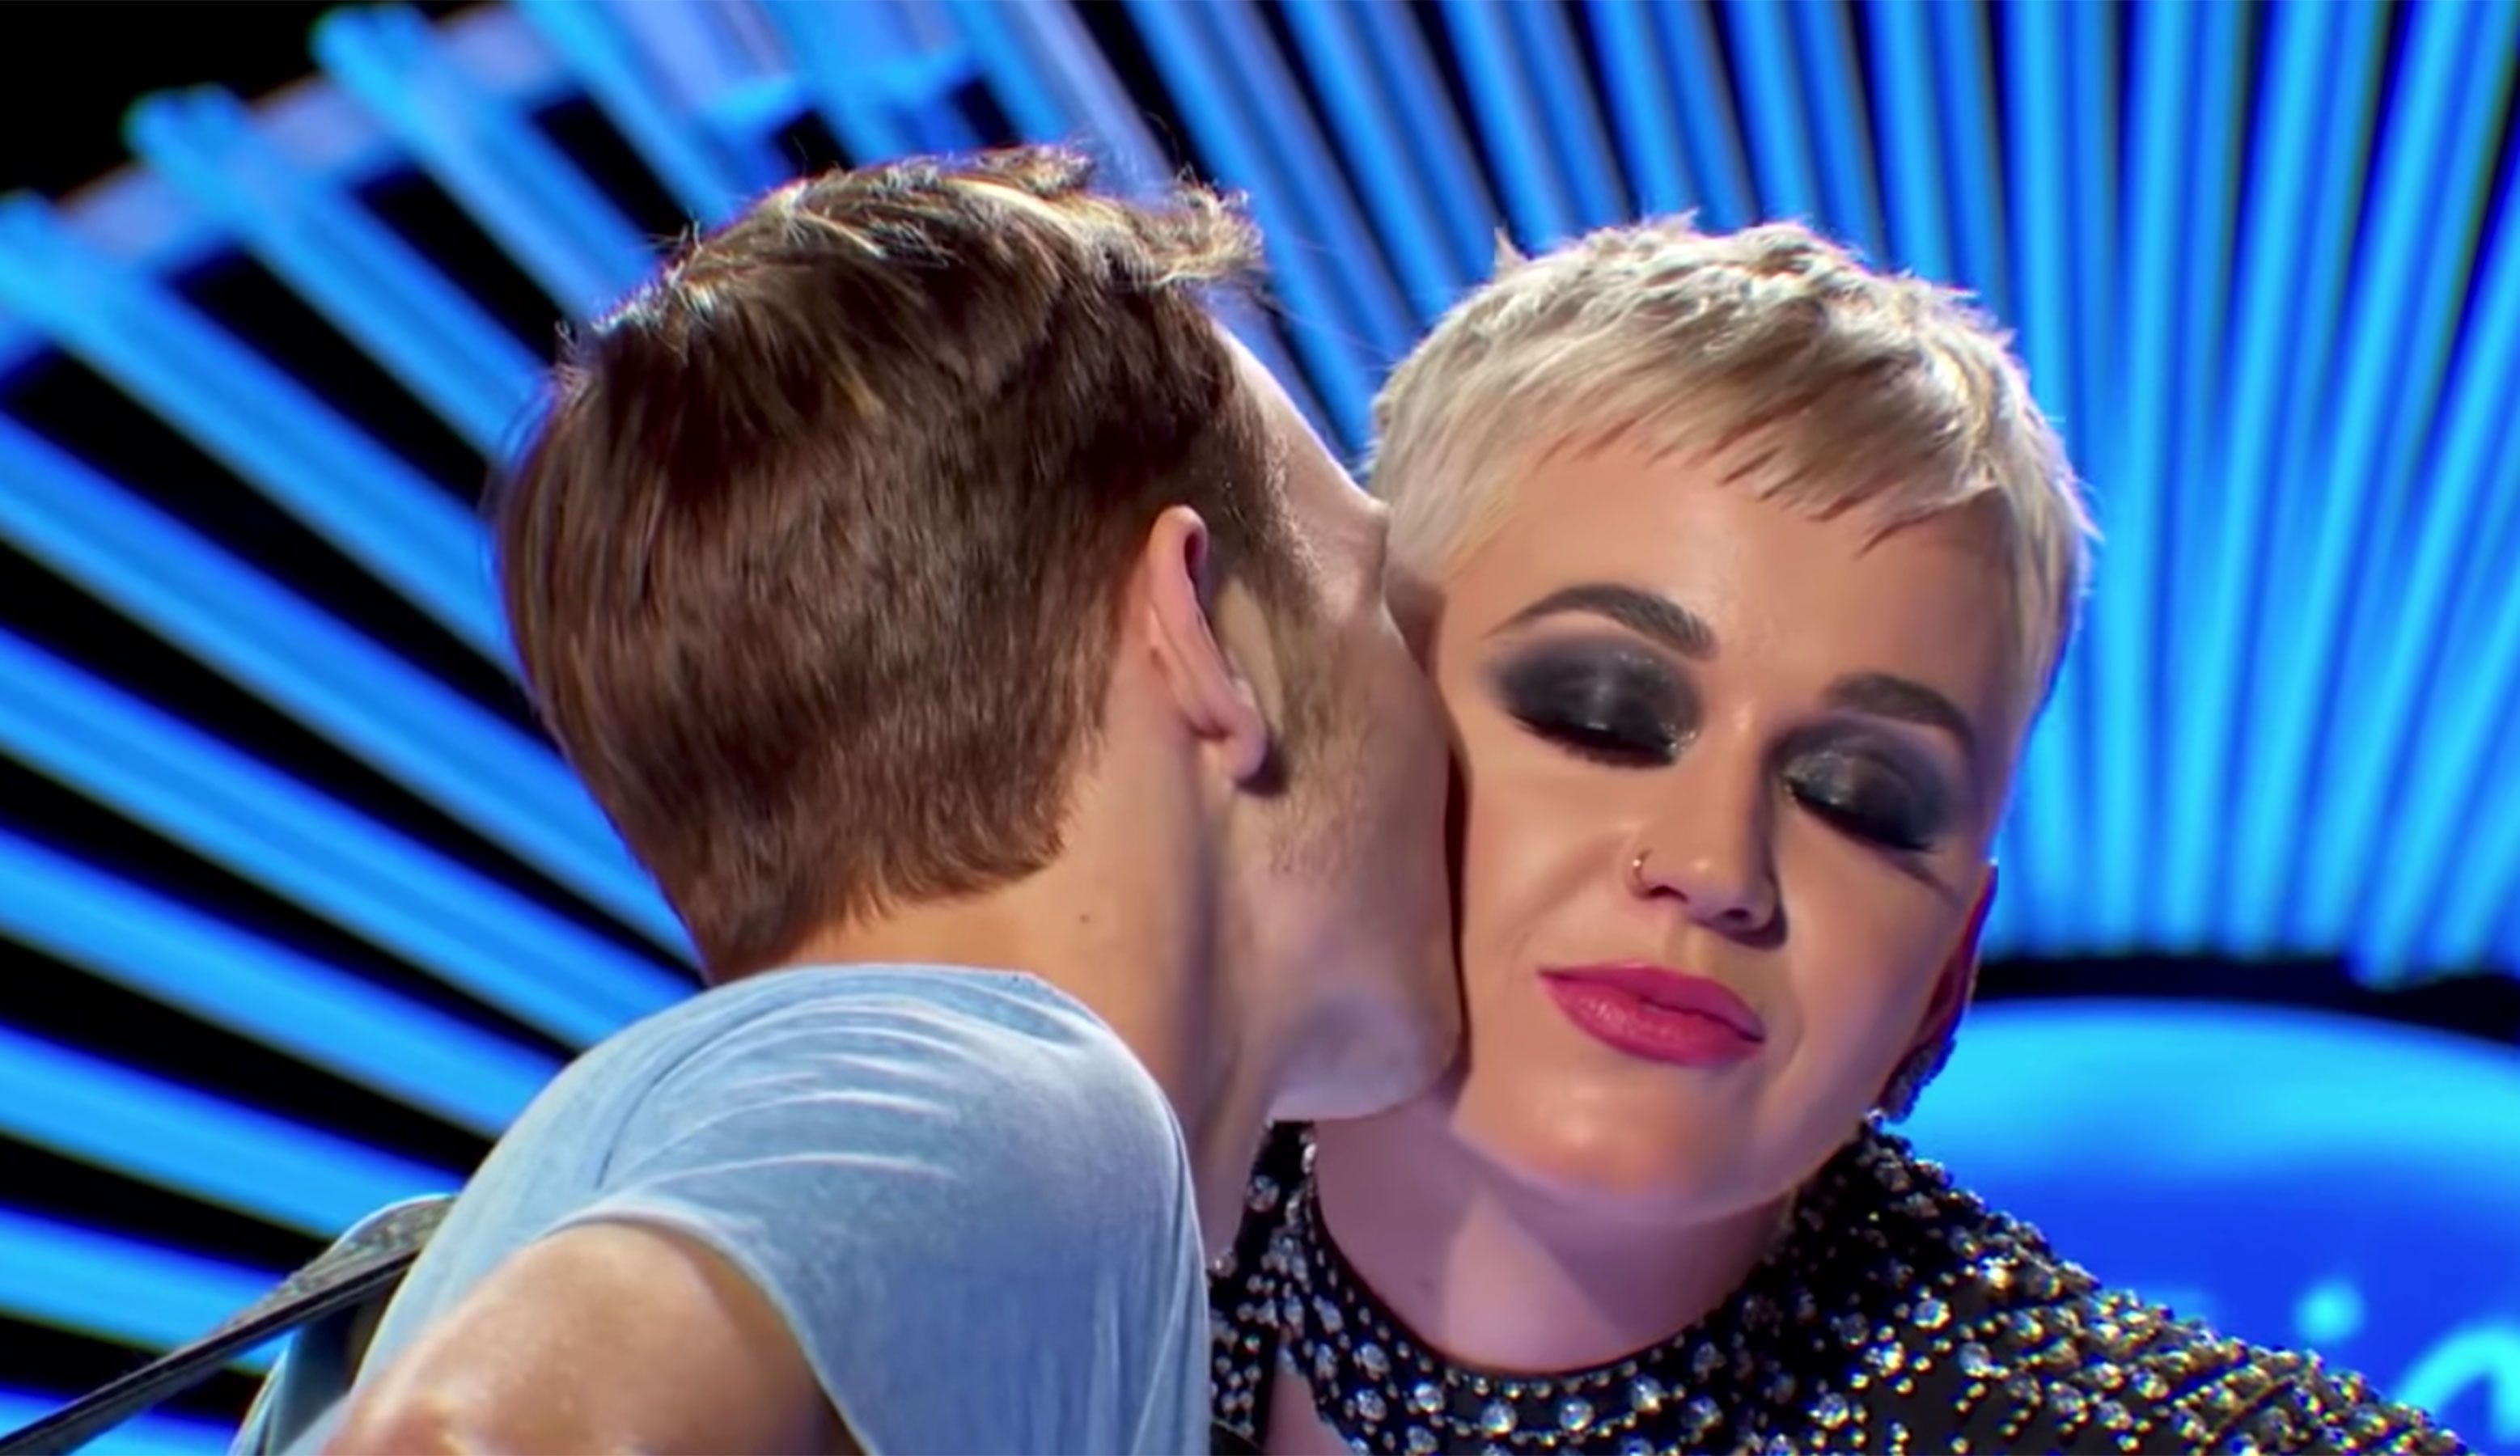 Surprise Katy Perry Gives 19 Year Old American Idol Contestant